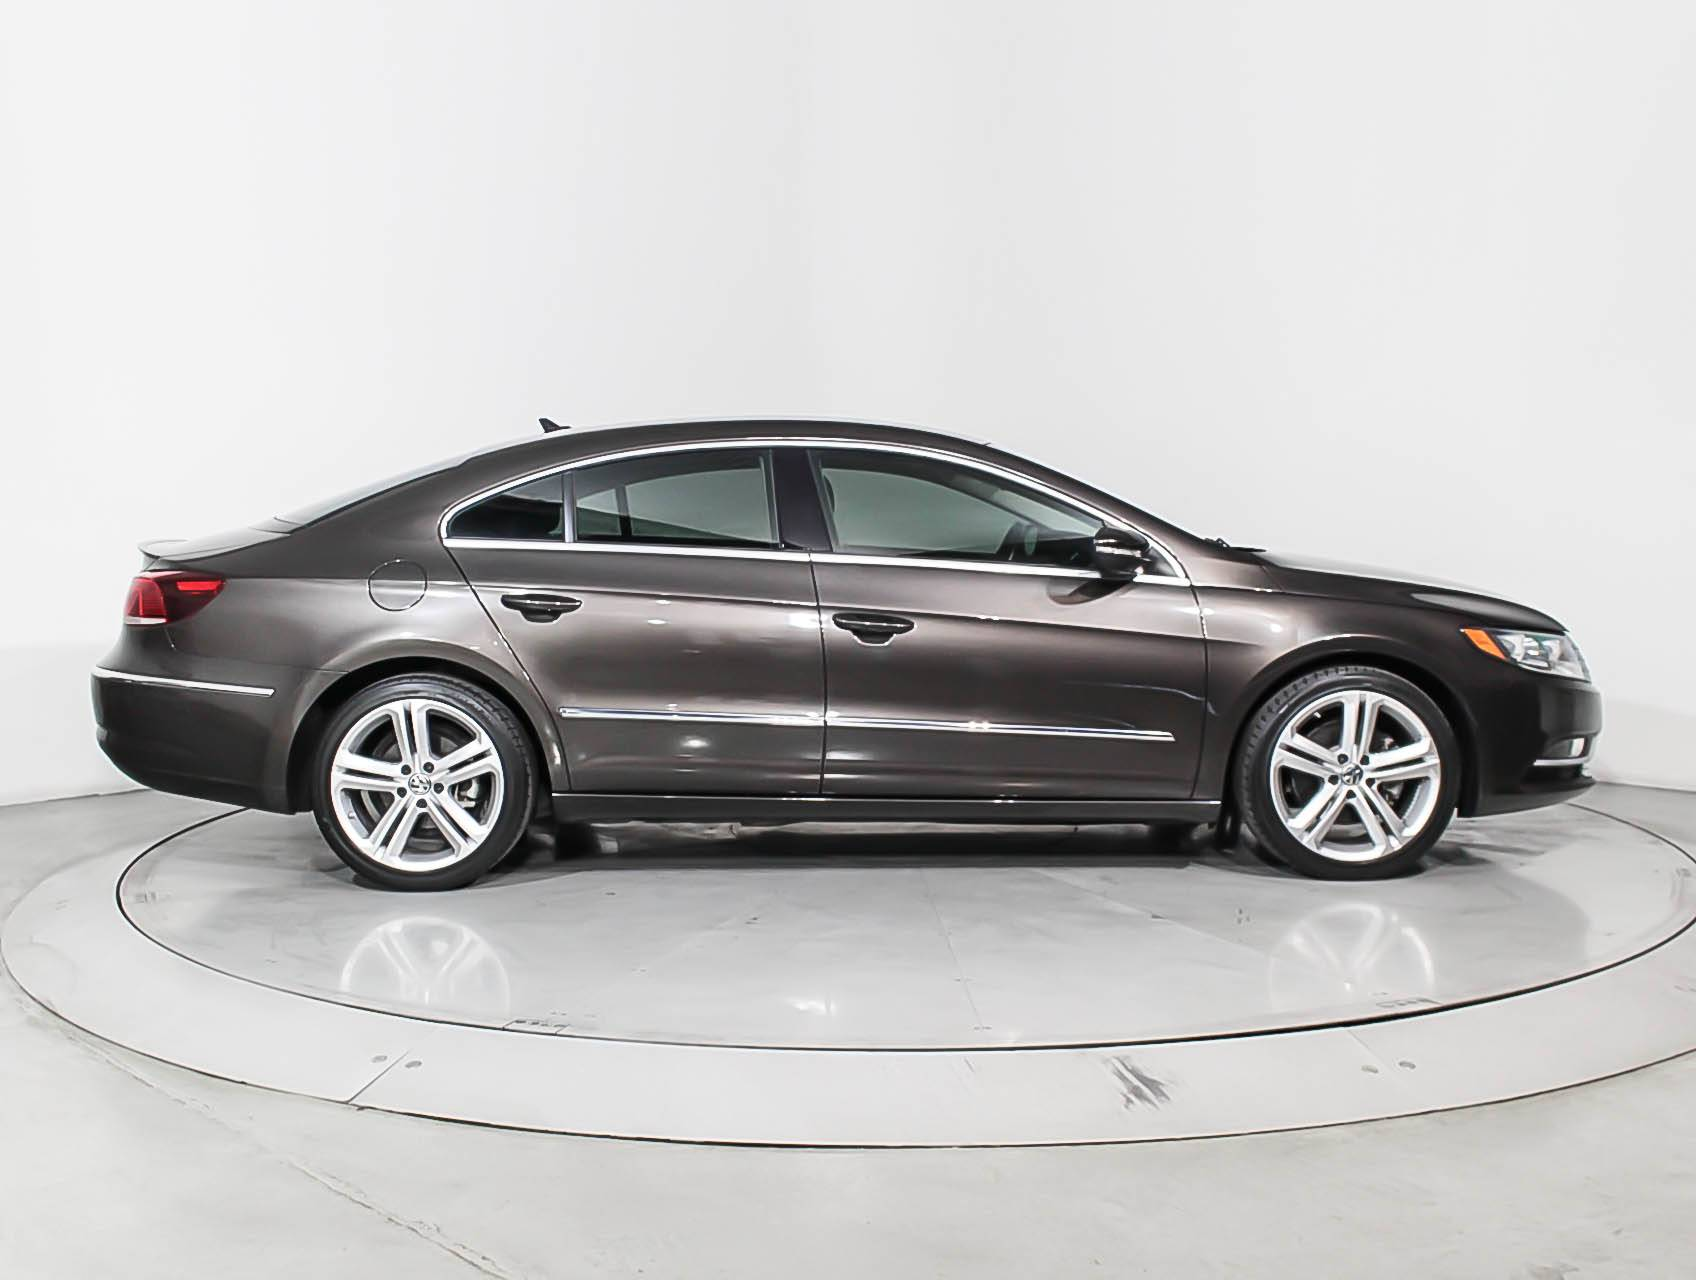 Used 2013 VOLKSWAGEN CC 2.0t Sport Plus Sedan for sale in HOLLYWOOD, FL | 98587 | Florida Fine Cars